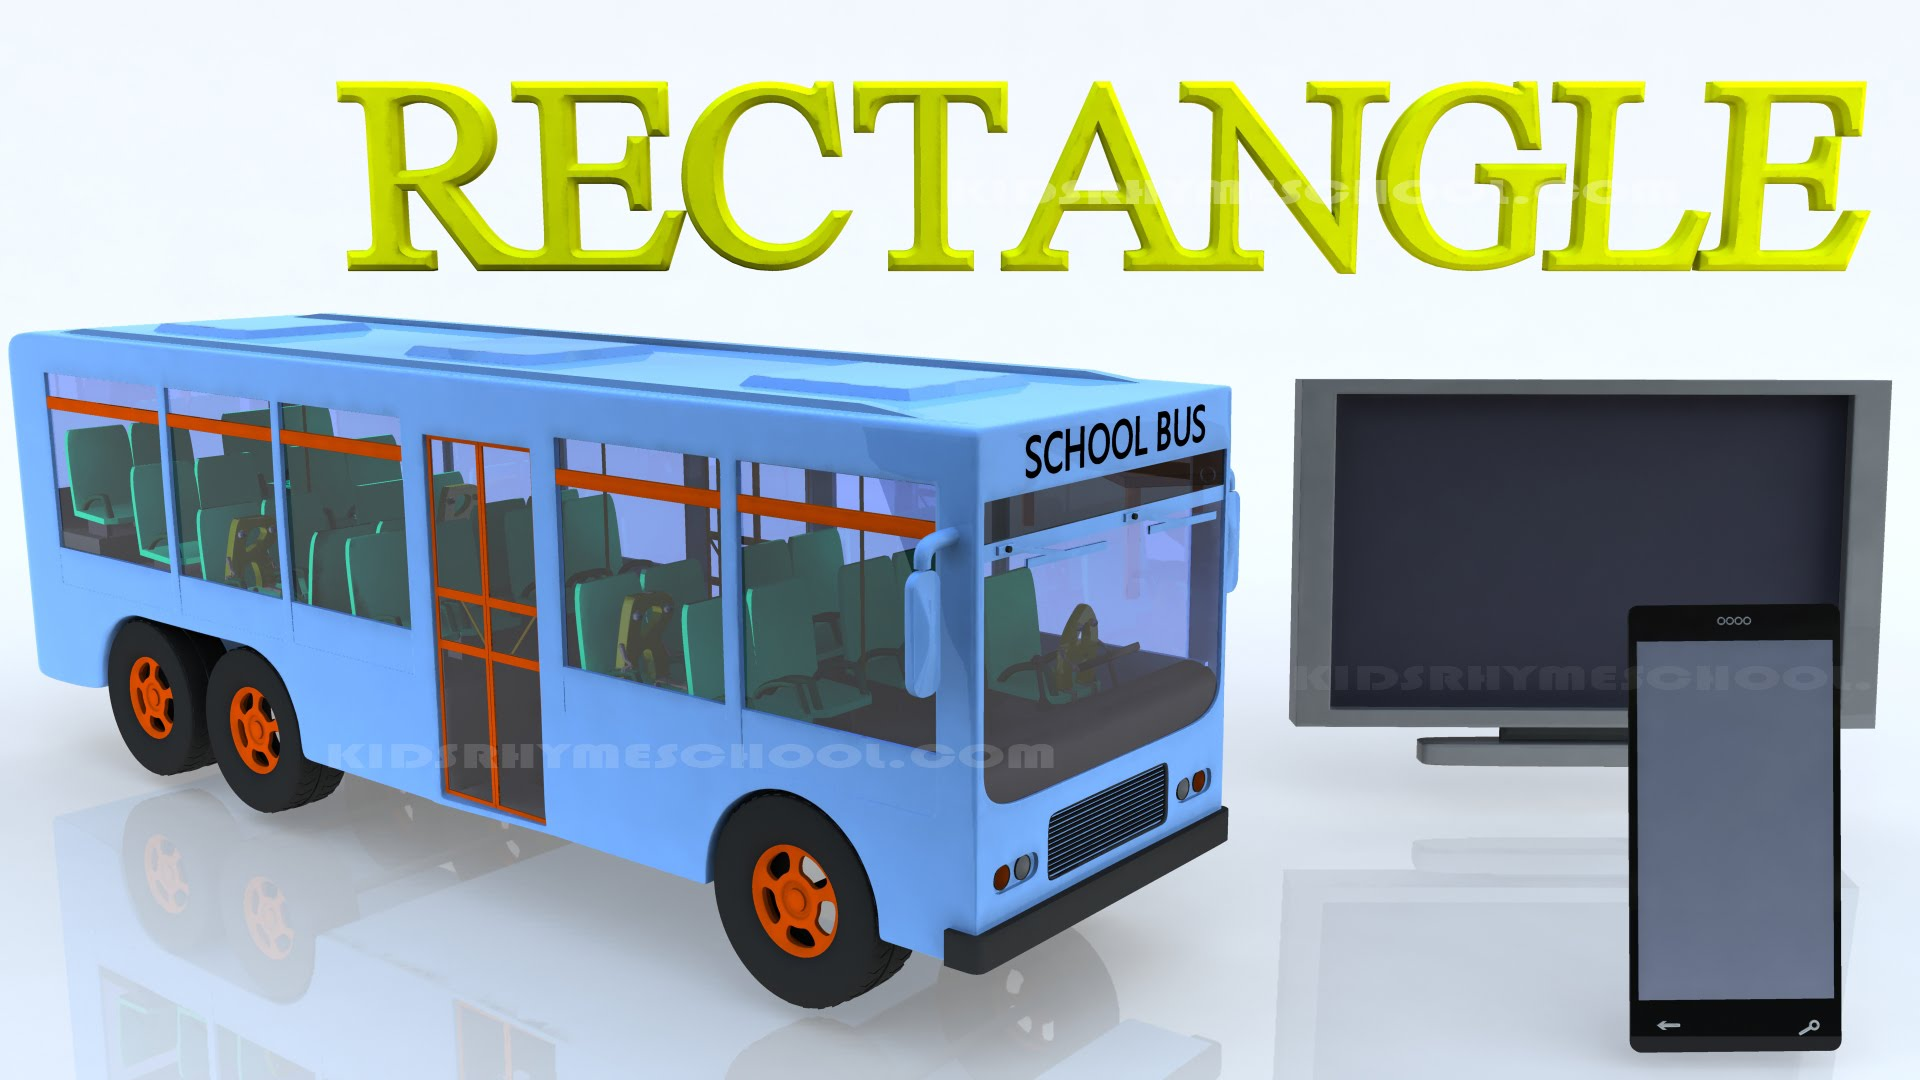 Bus clipart rectangle. Learn shapes for kids